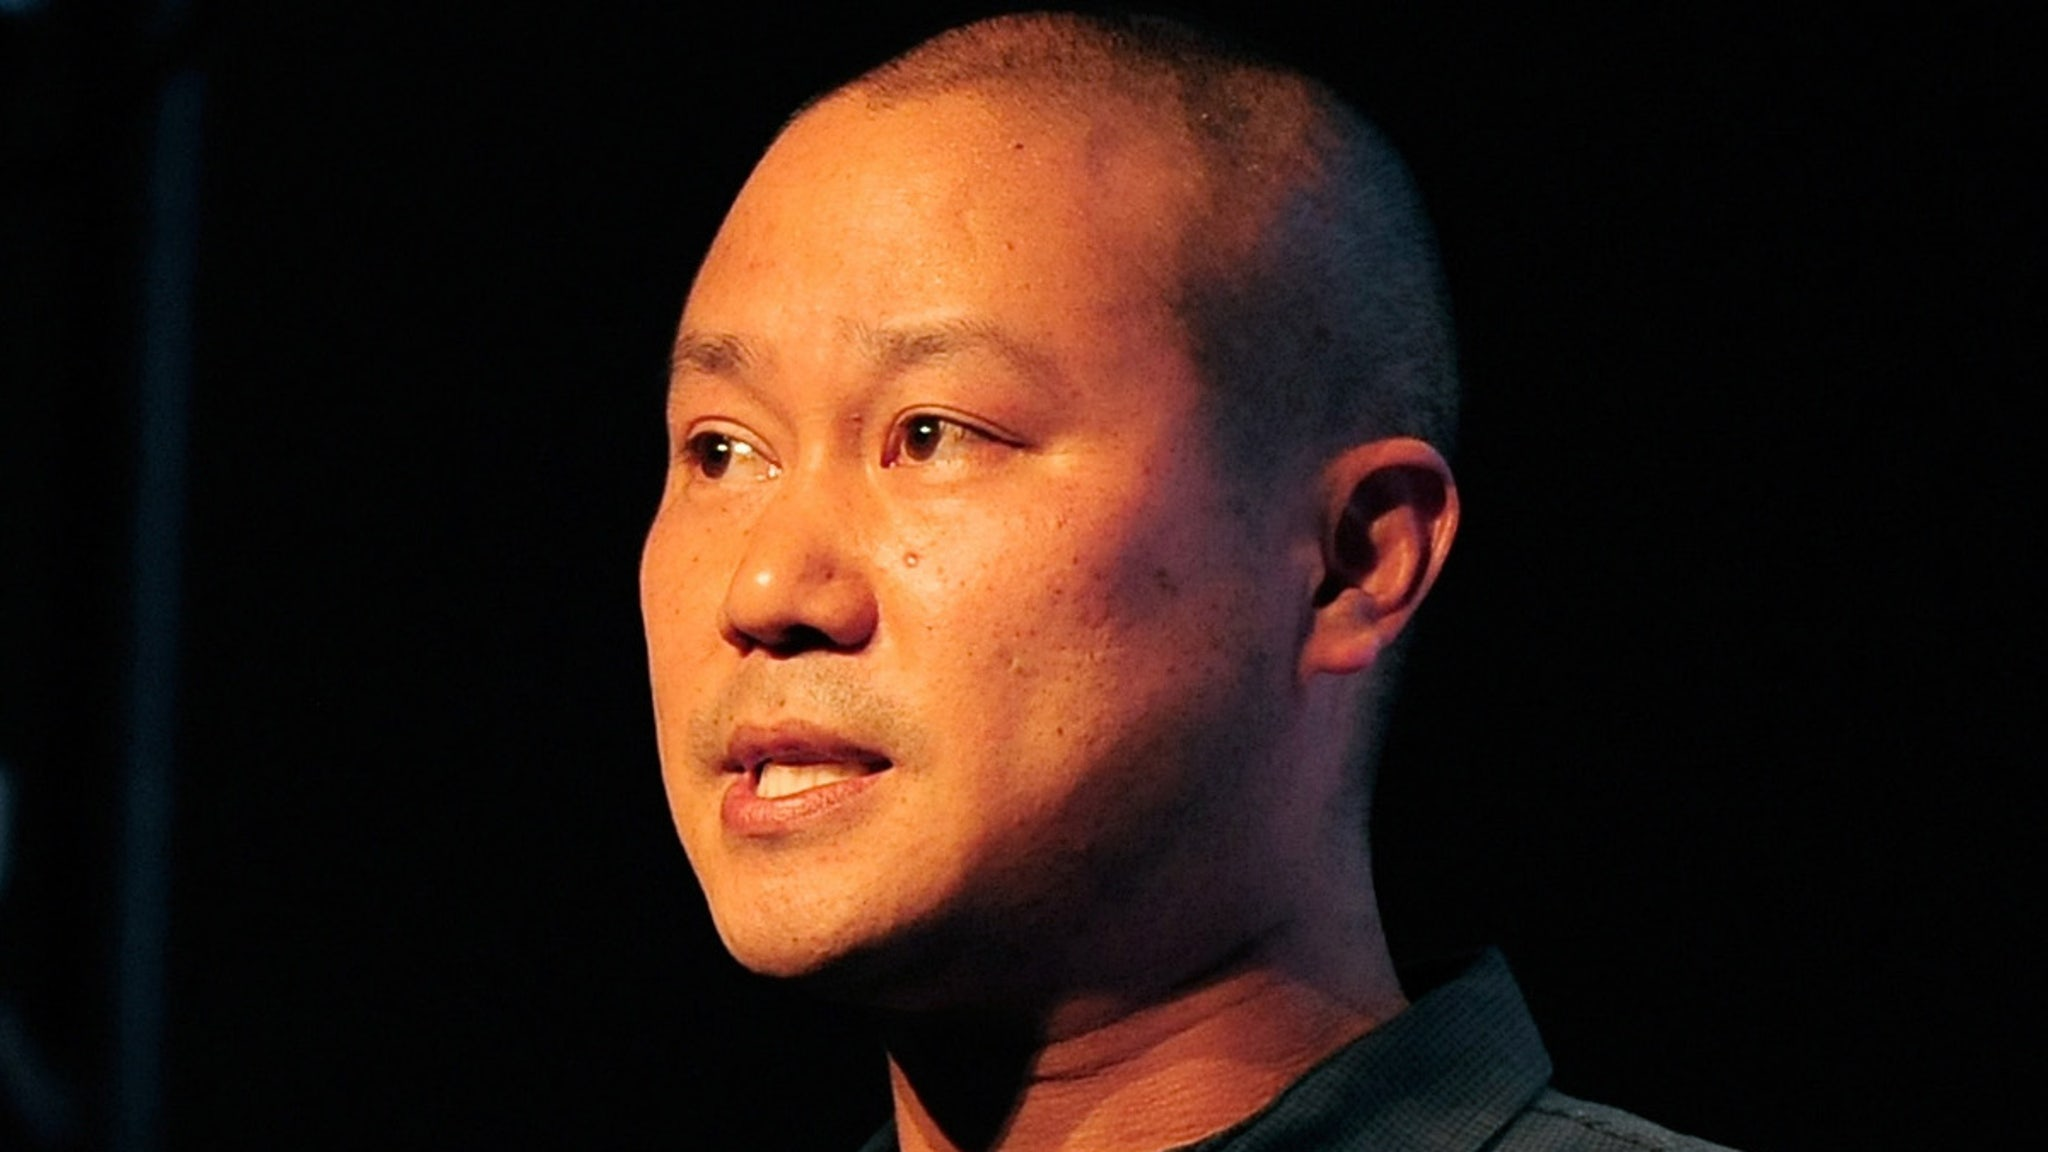 Ex-Zappos CEO Tony Hsieh's Estate Hit with $40k Bill for Brain Artwork thumbnail